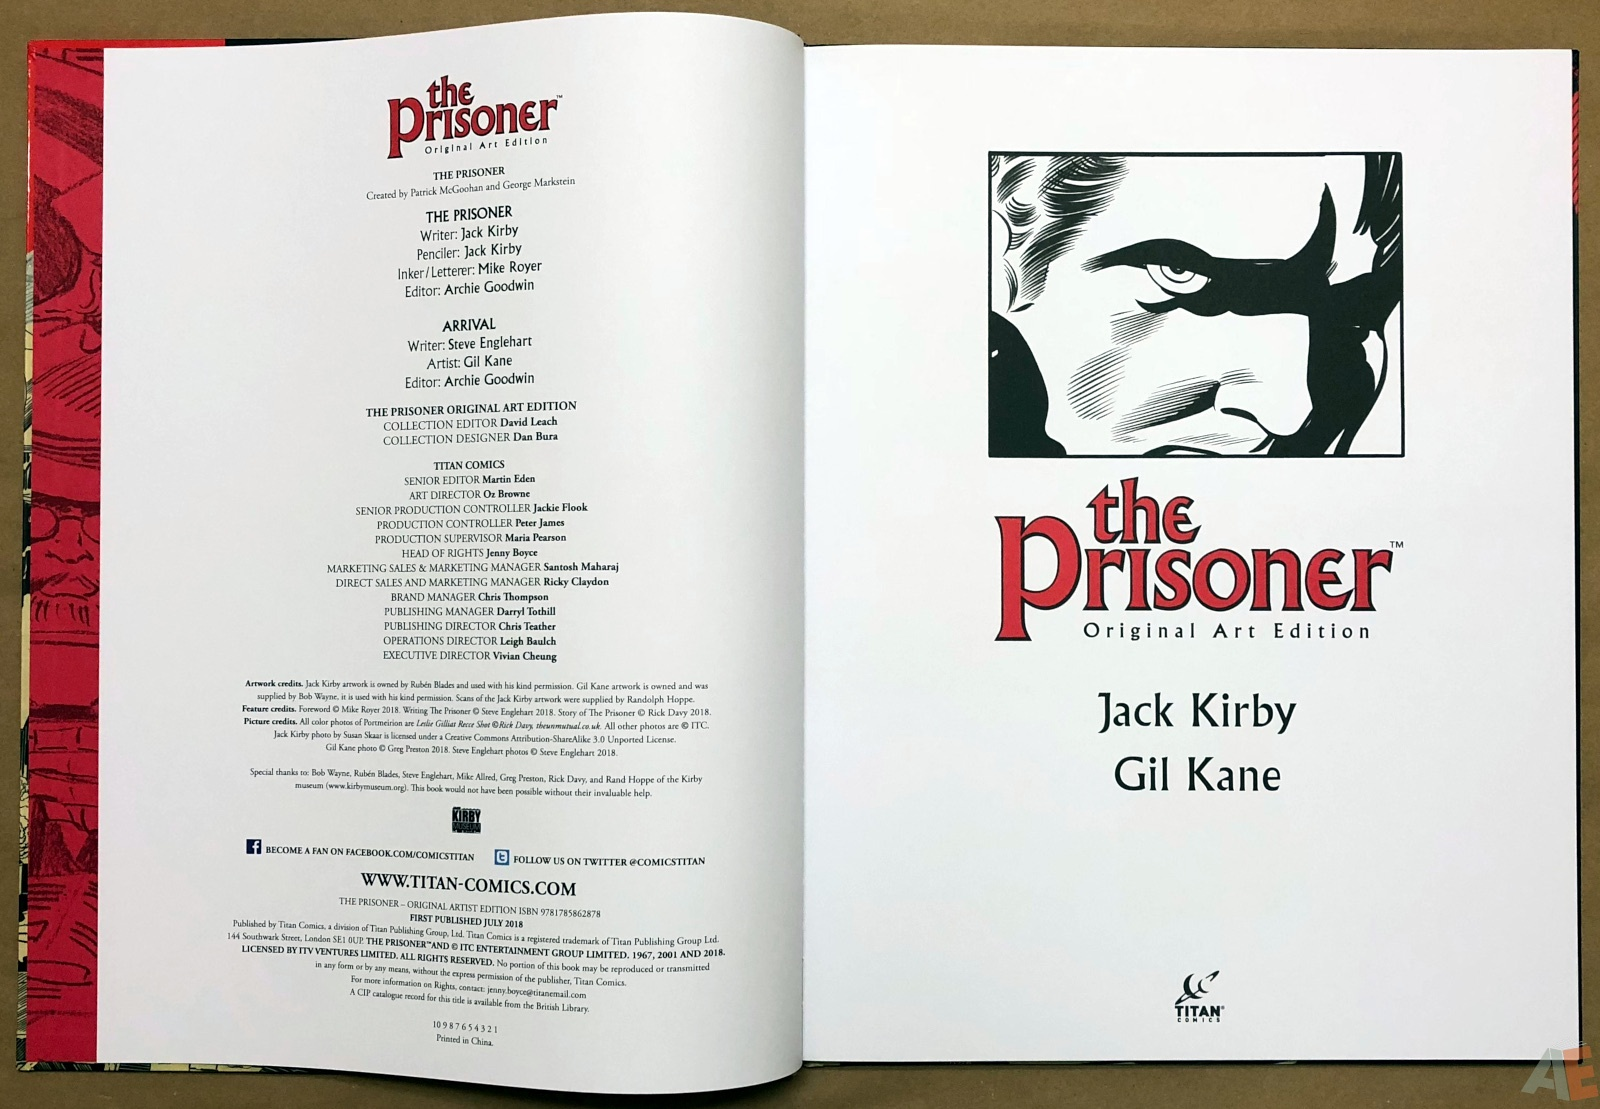 The Prisoner - Original Art Edition